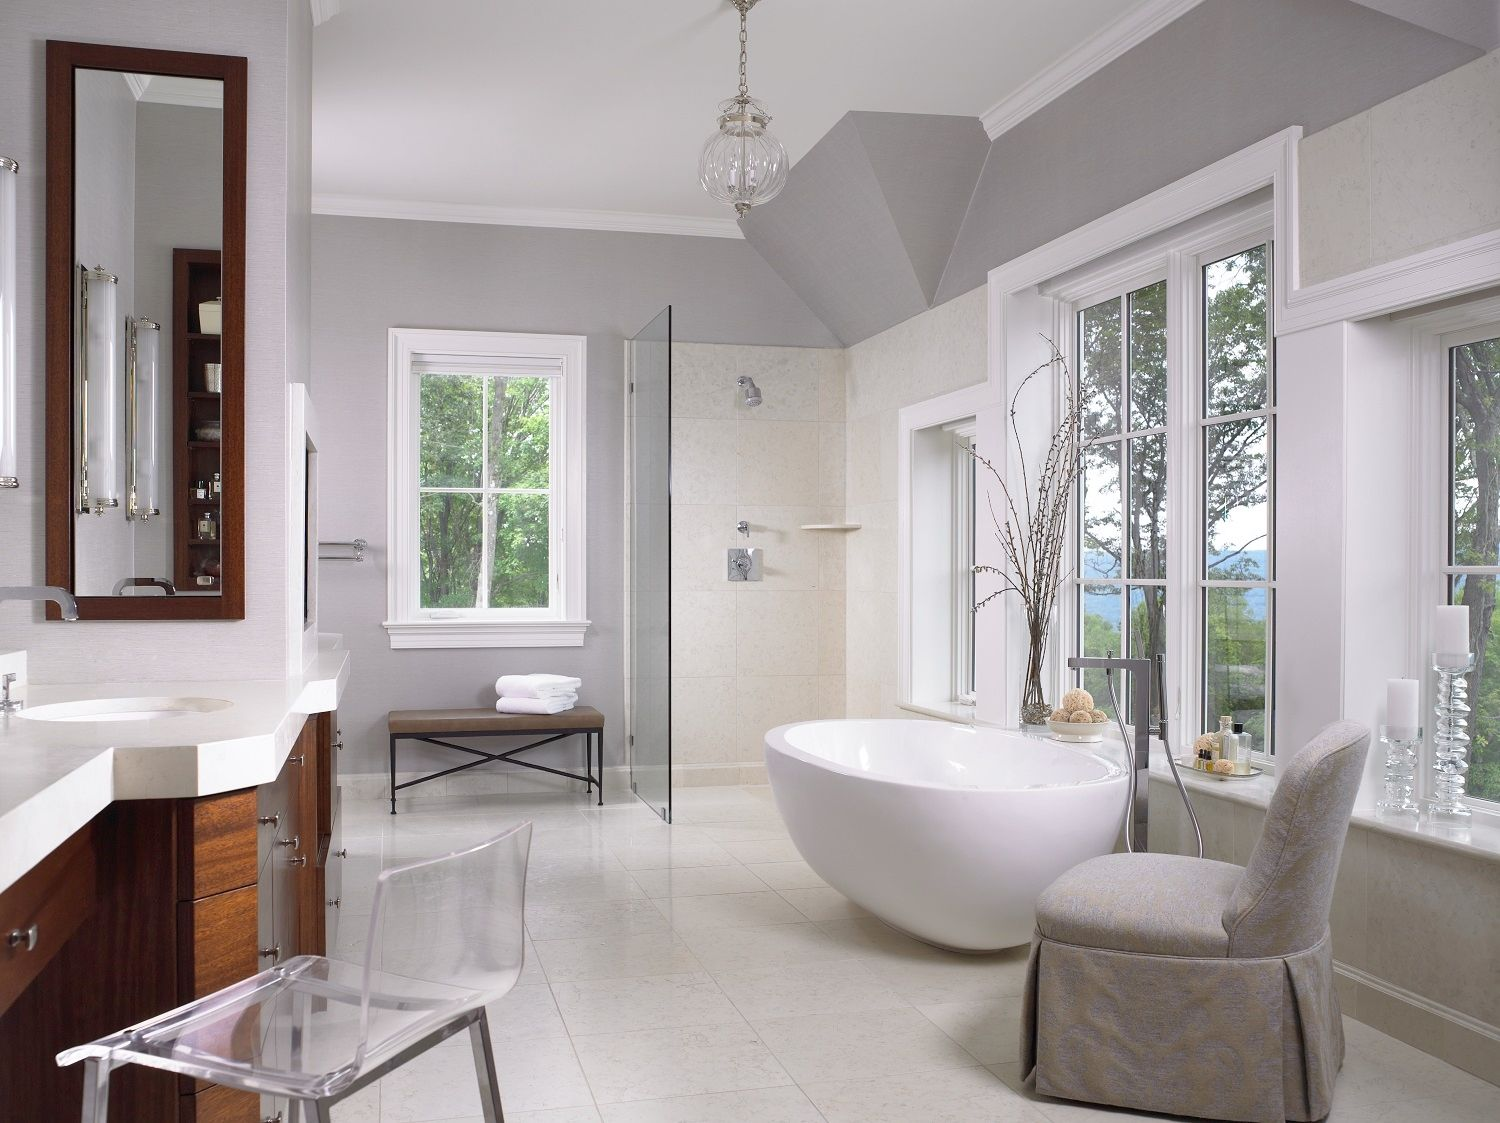 image & 30 Perfect Bathrooms with Luxurious Curved Tubs - Round Bathtub Ideas